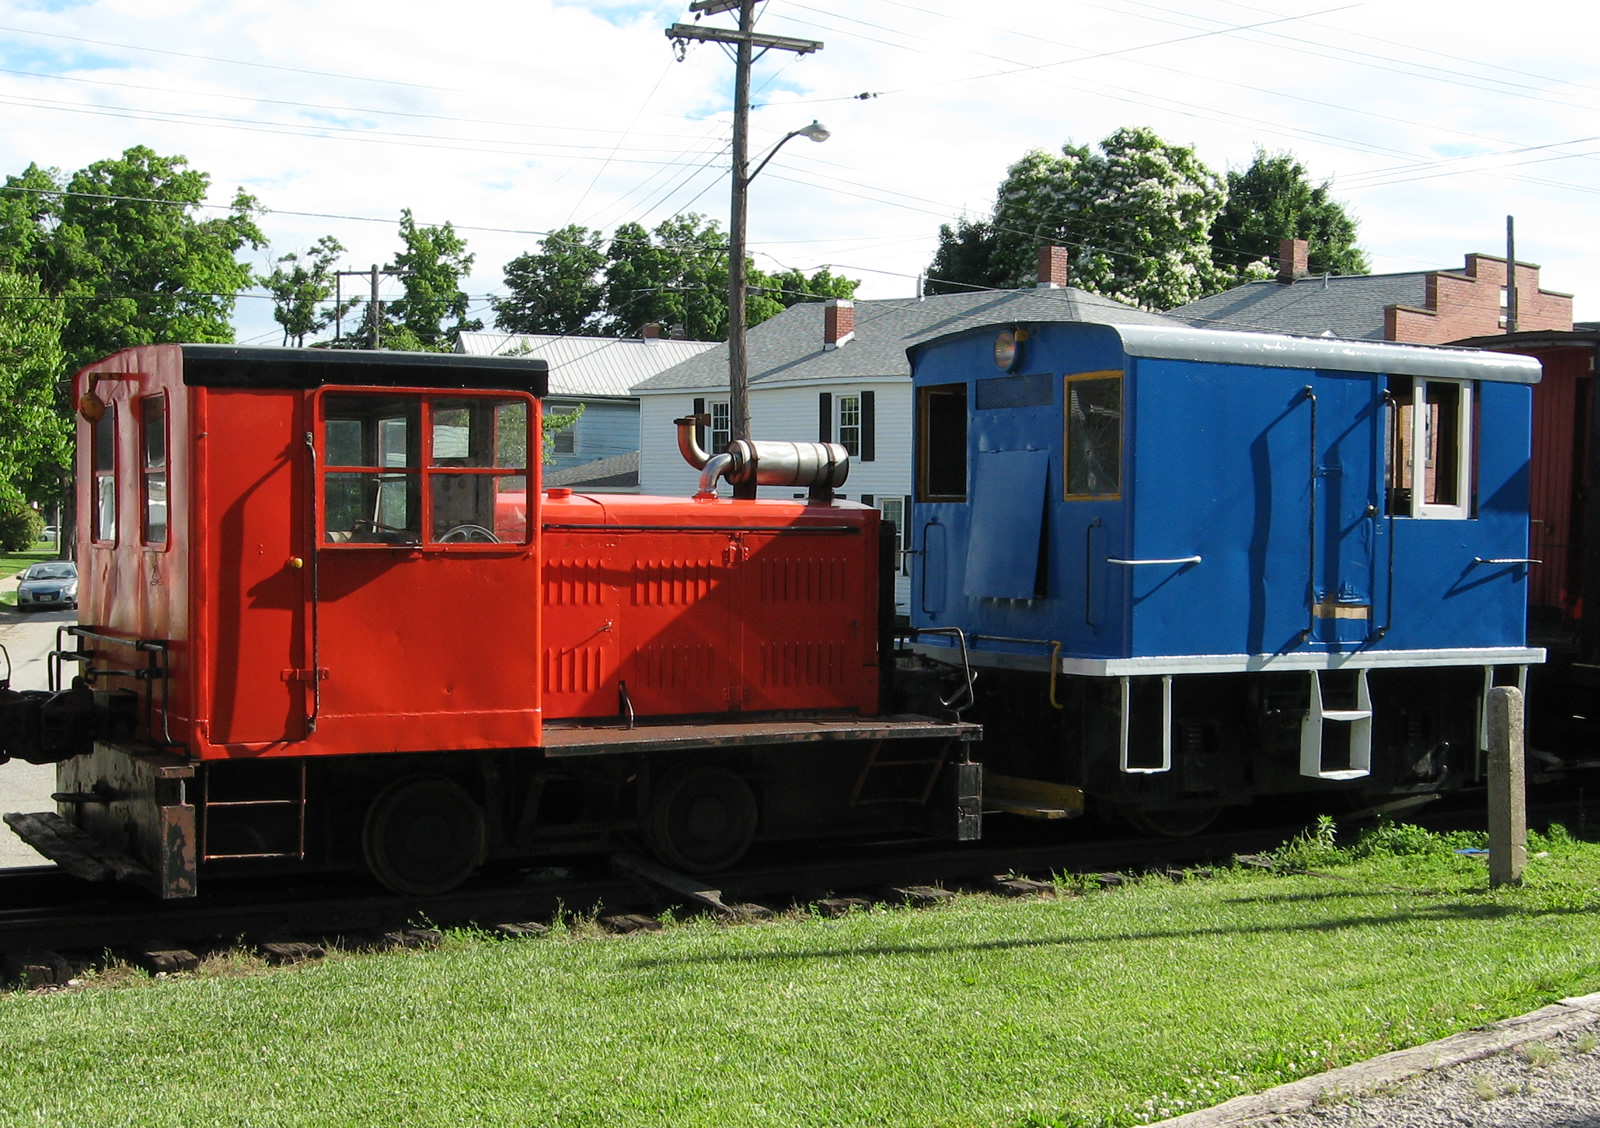 The Plymouth in red and the GE in blue